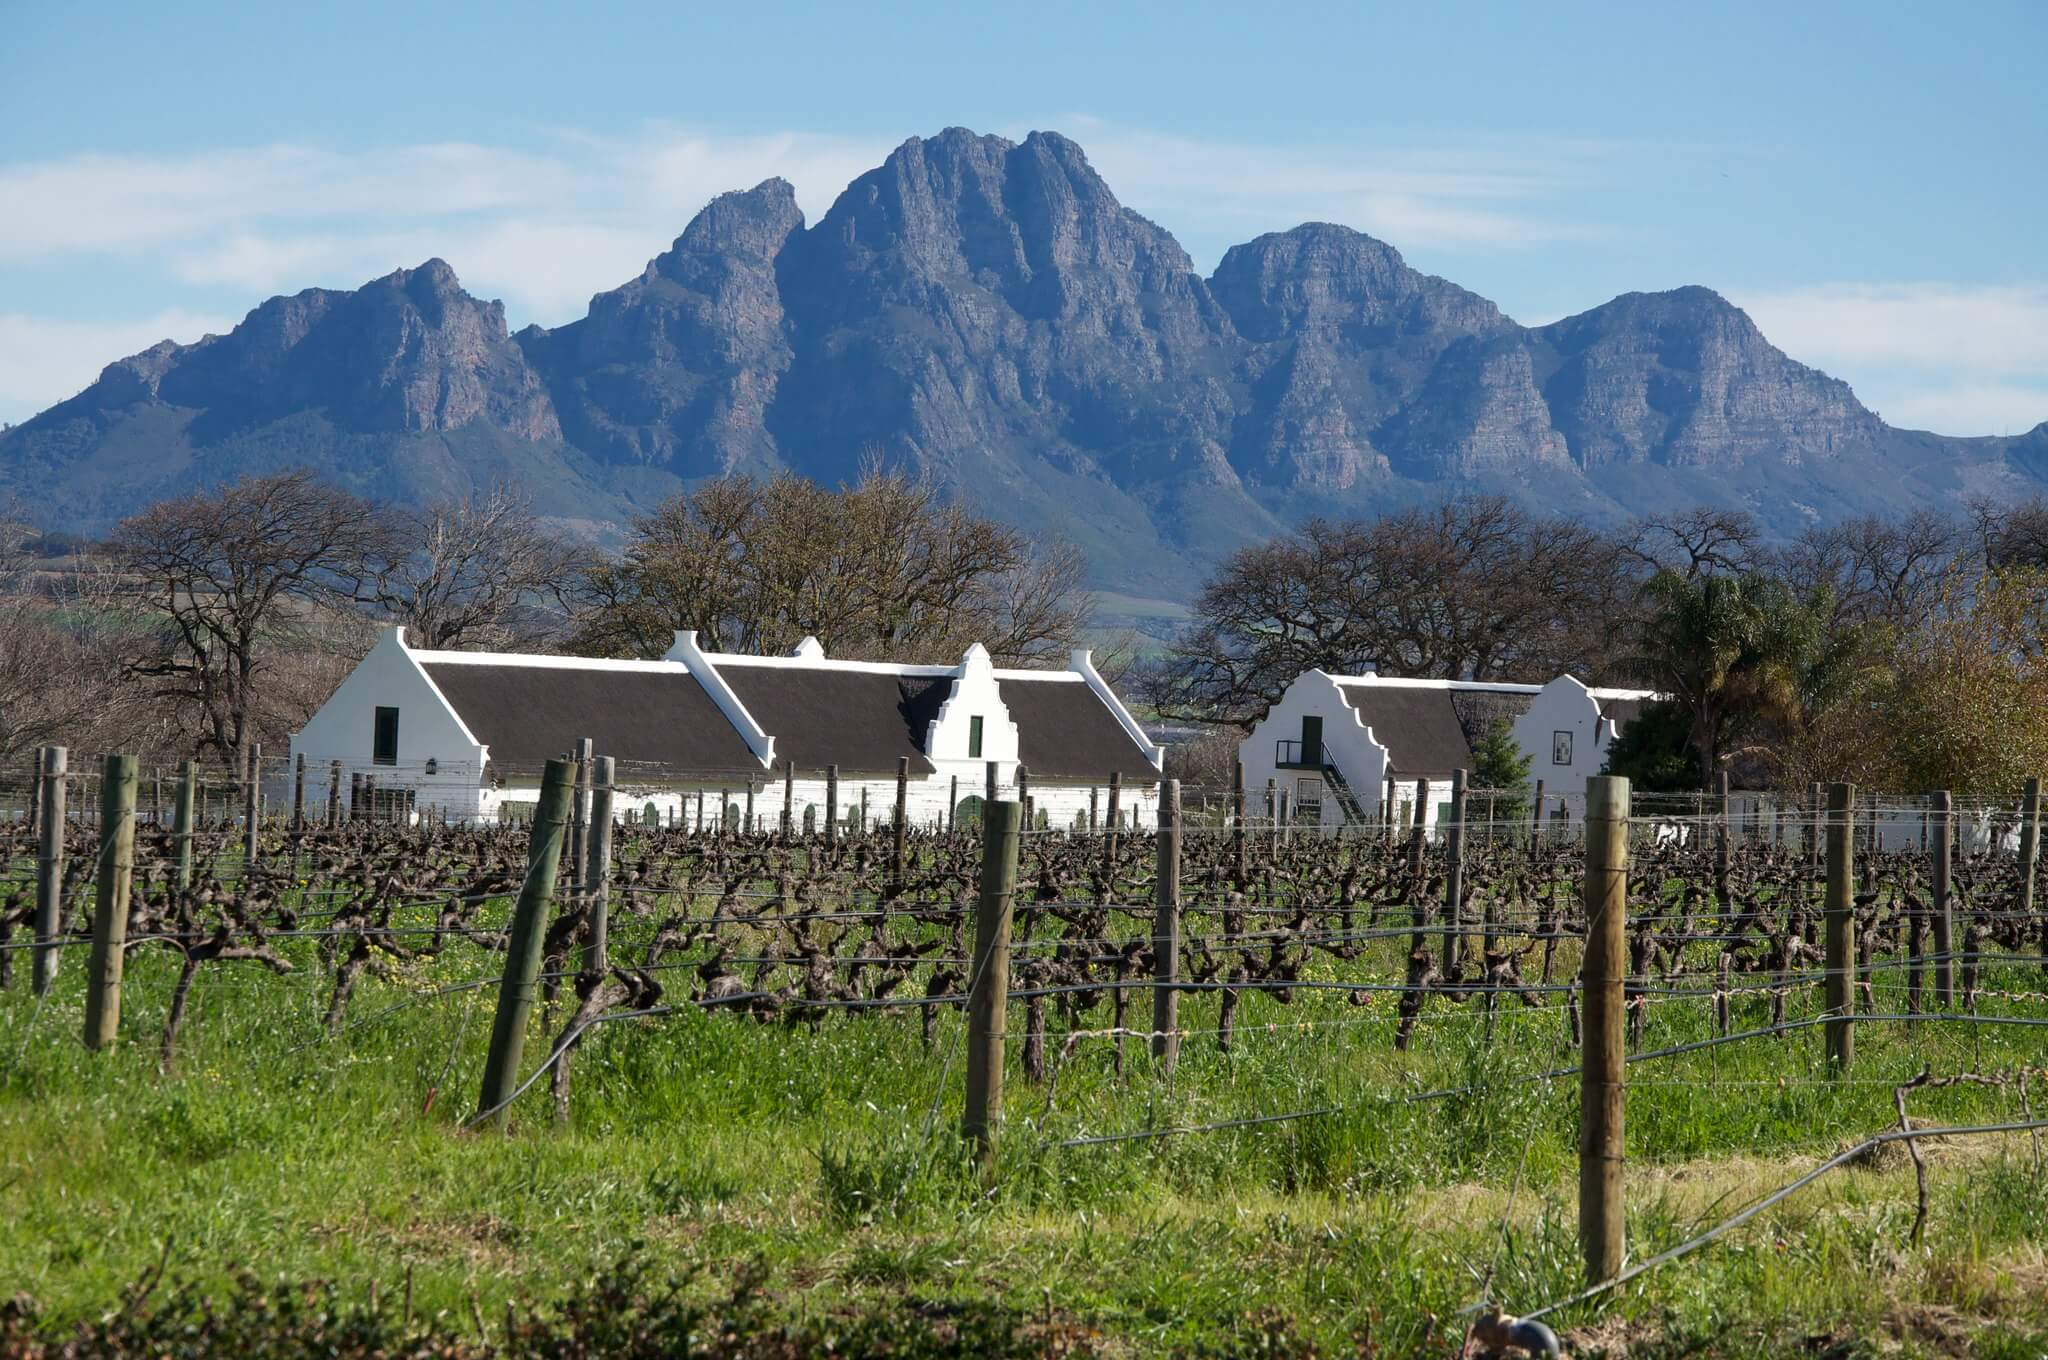 Links - Cape Dutch cottages at La Motte vineyard in the Western Cape, South Africa. Jon Connell - Flickr